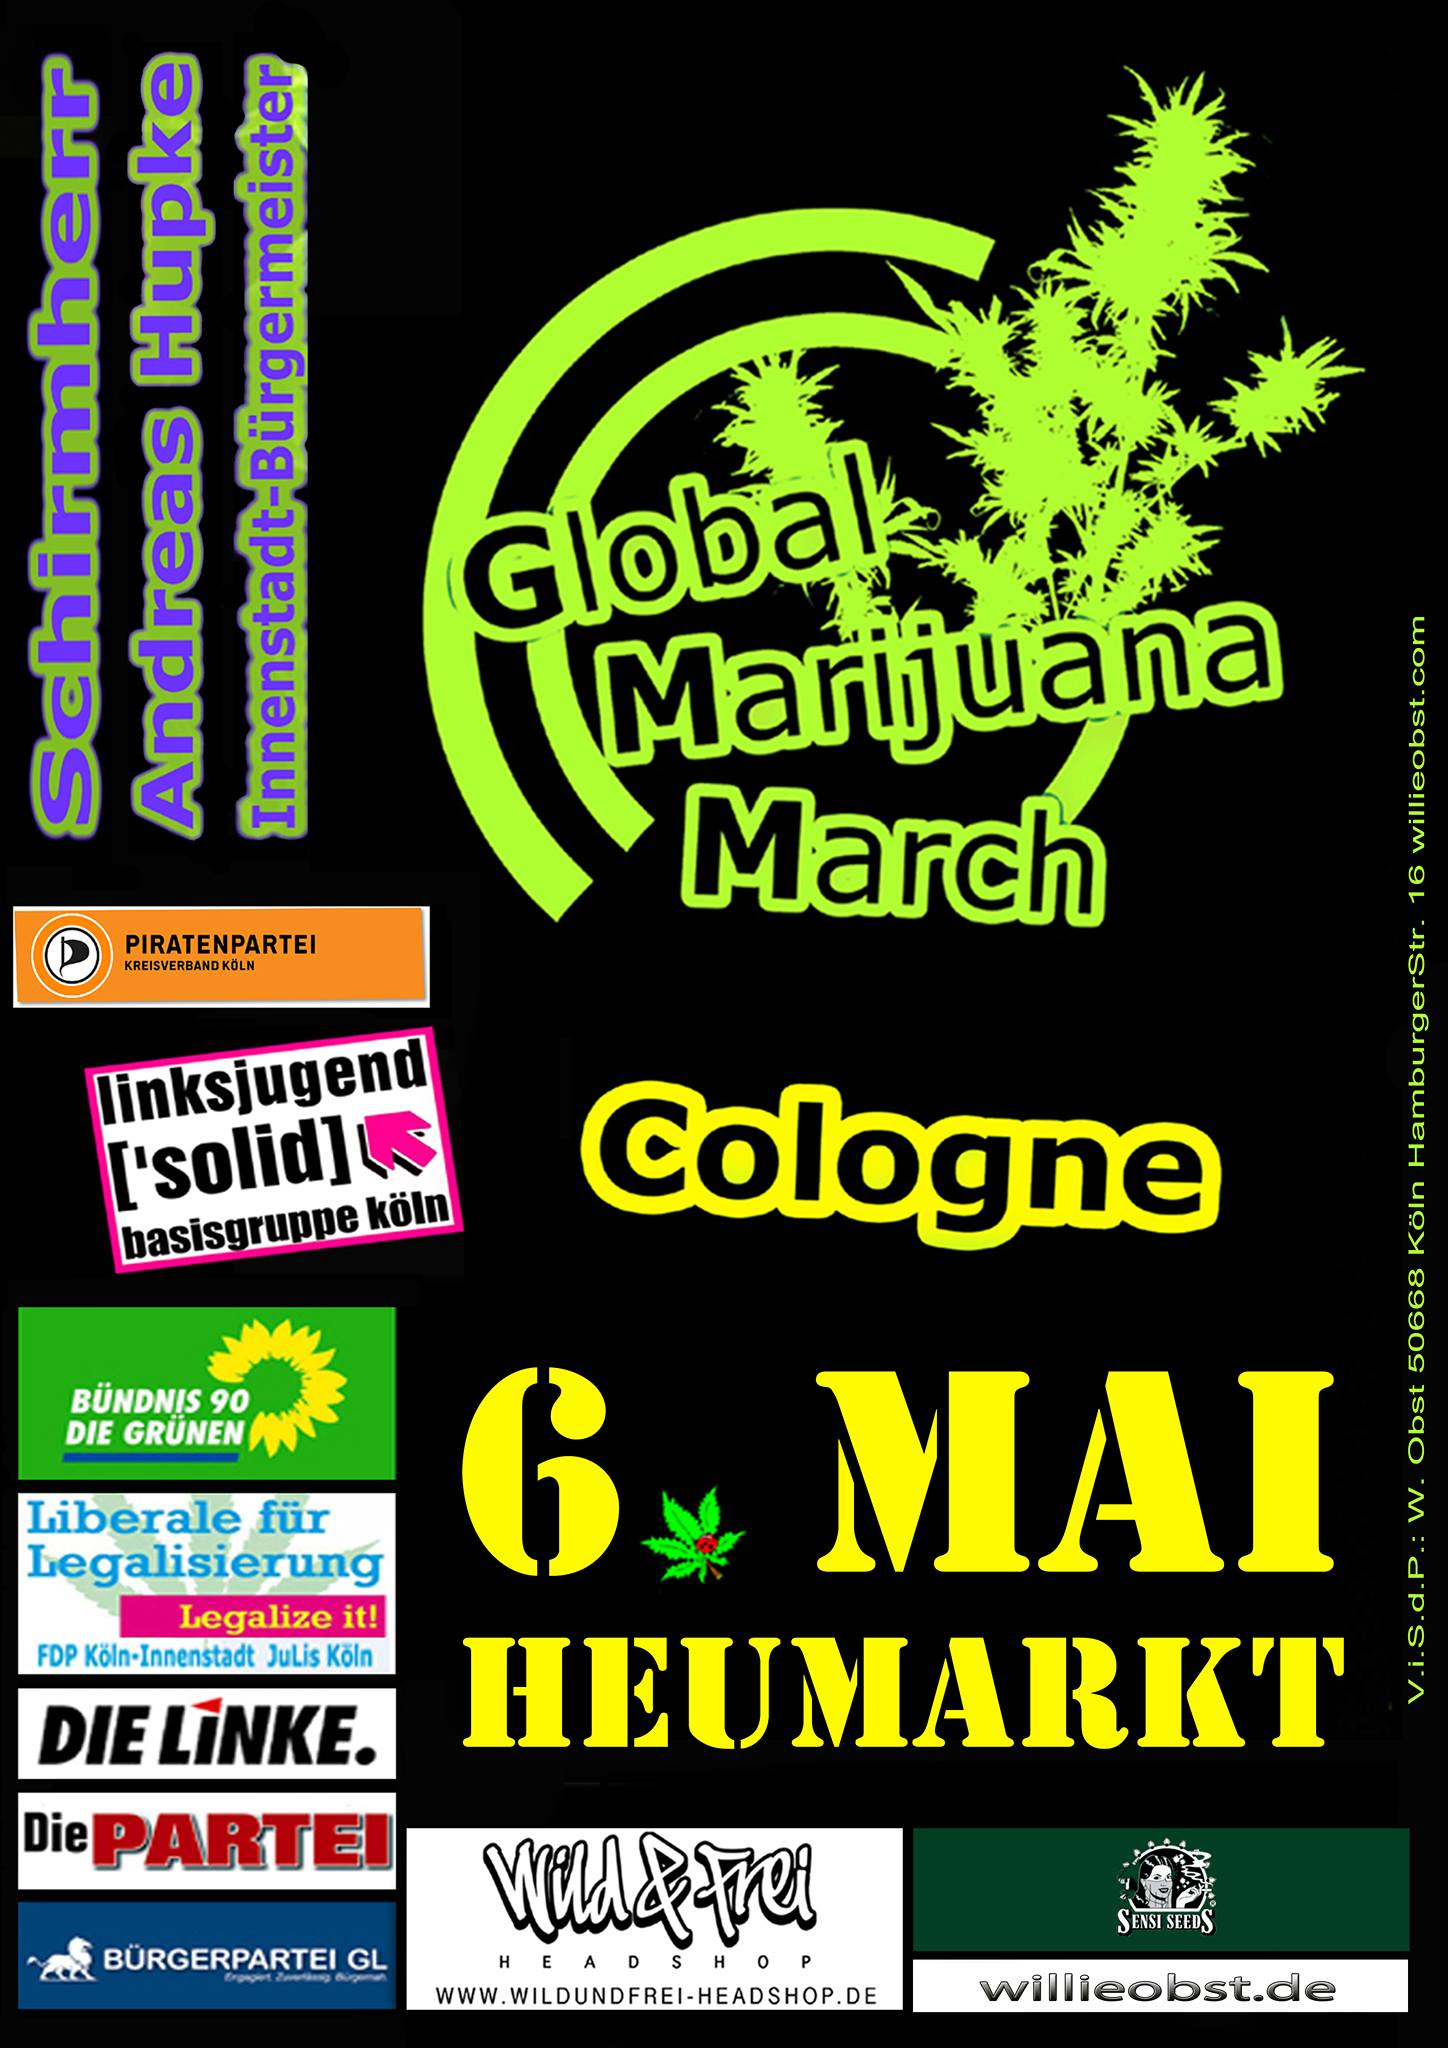 Global Marijuana March am Samstag in Köln